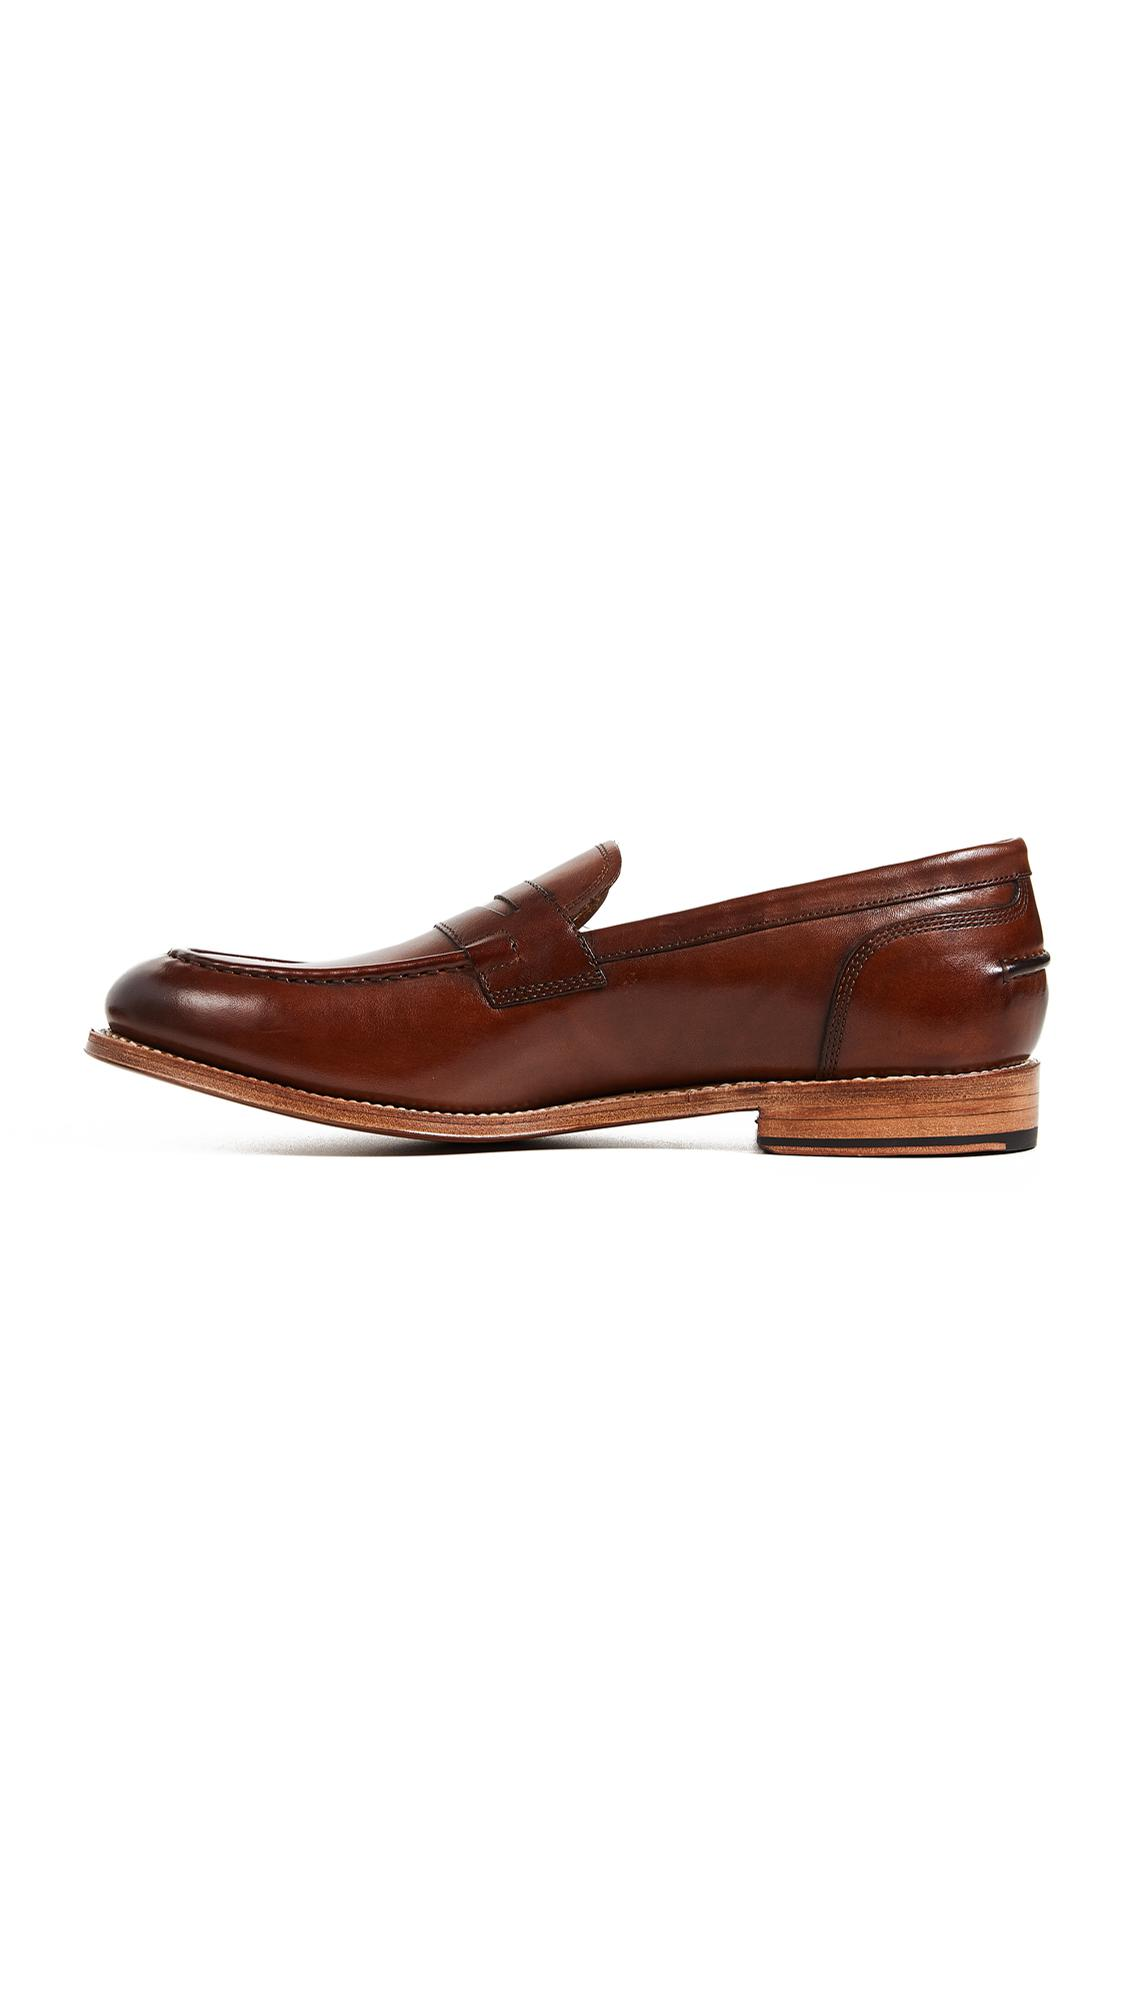 Grenson Leather Maxwell Loafers in Tan (Brown) for Men